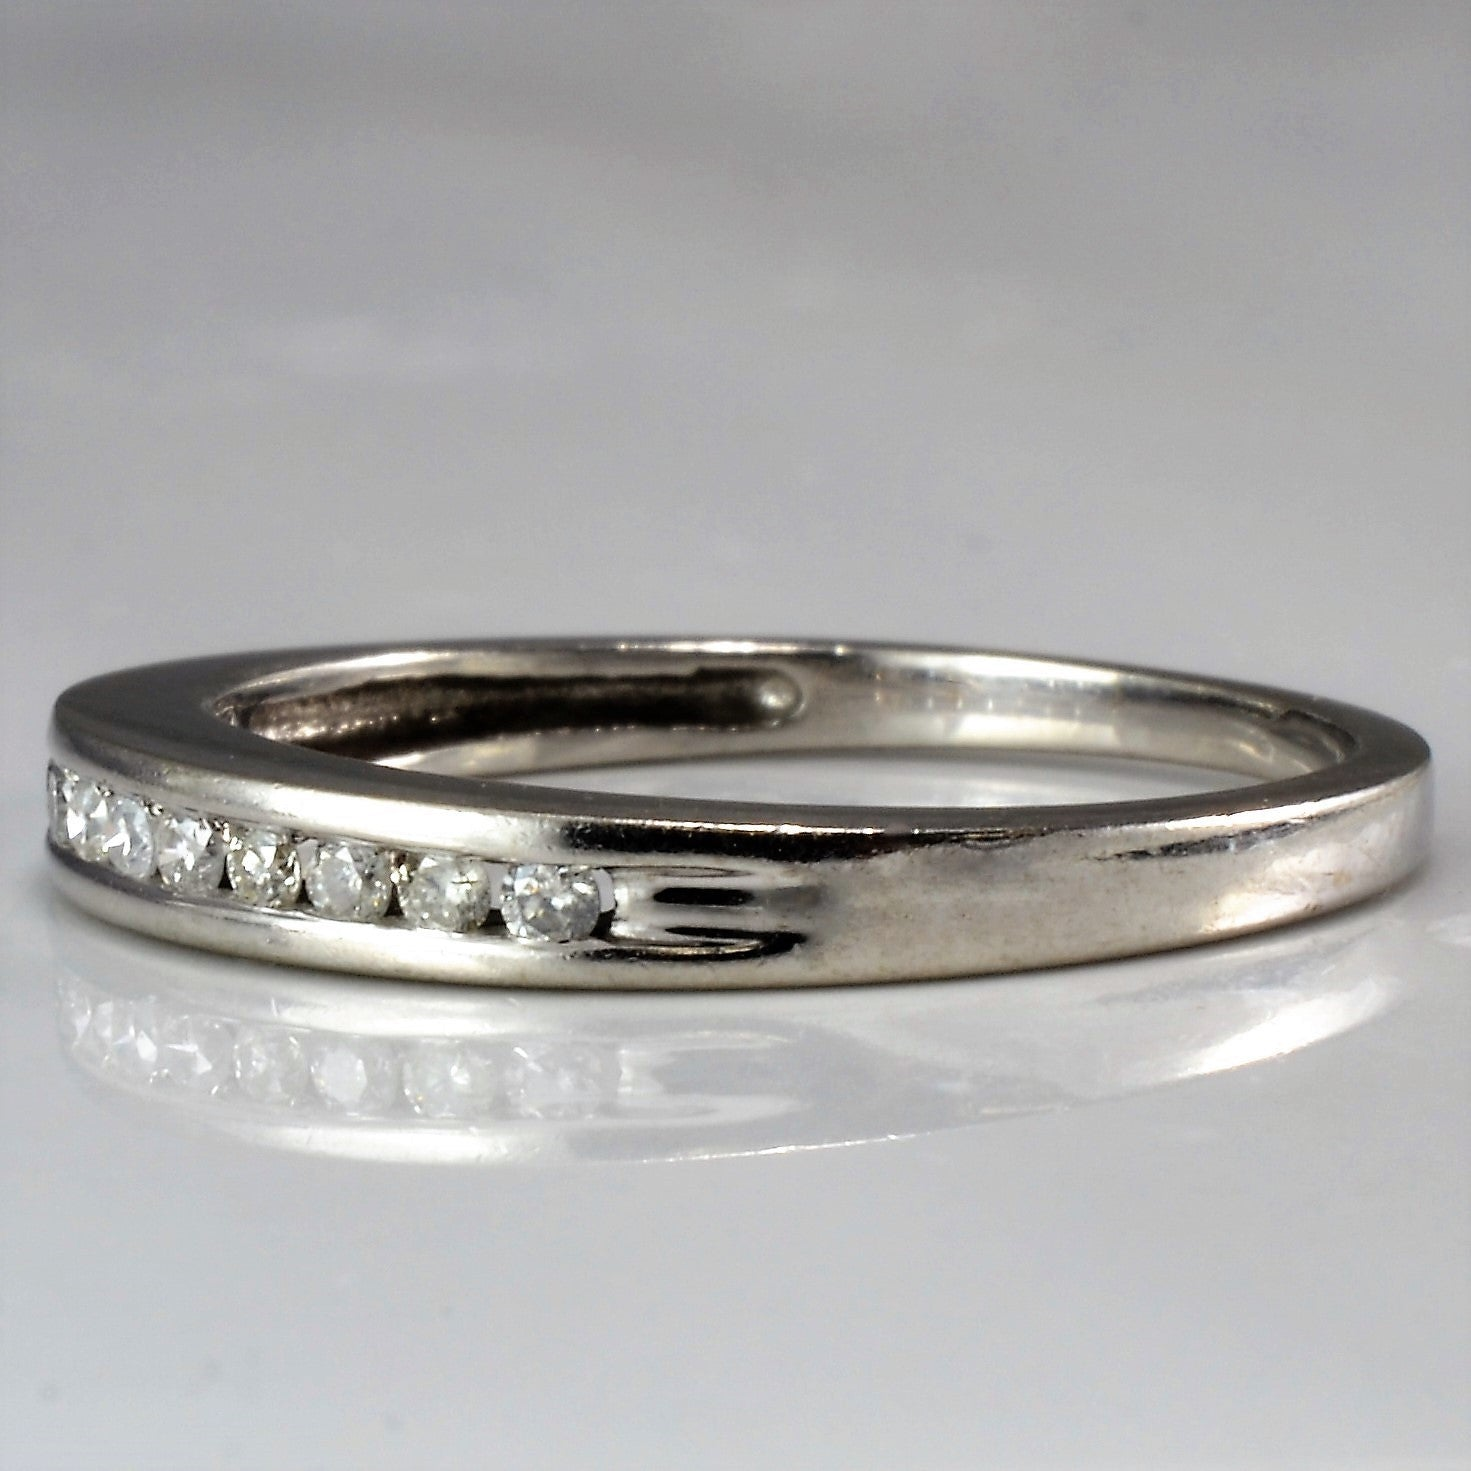 Classic White Gold Diamond Wedding Band | 0.05 ctw, SZ 6 |